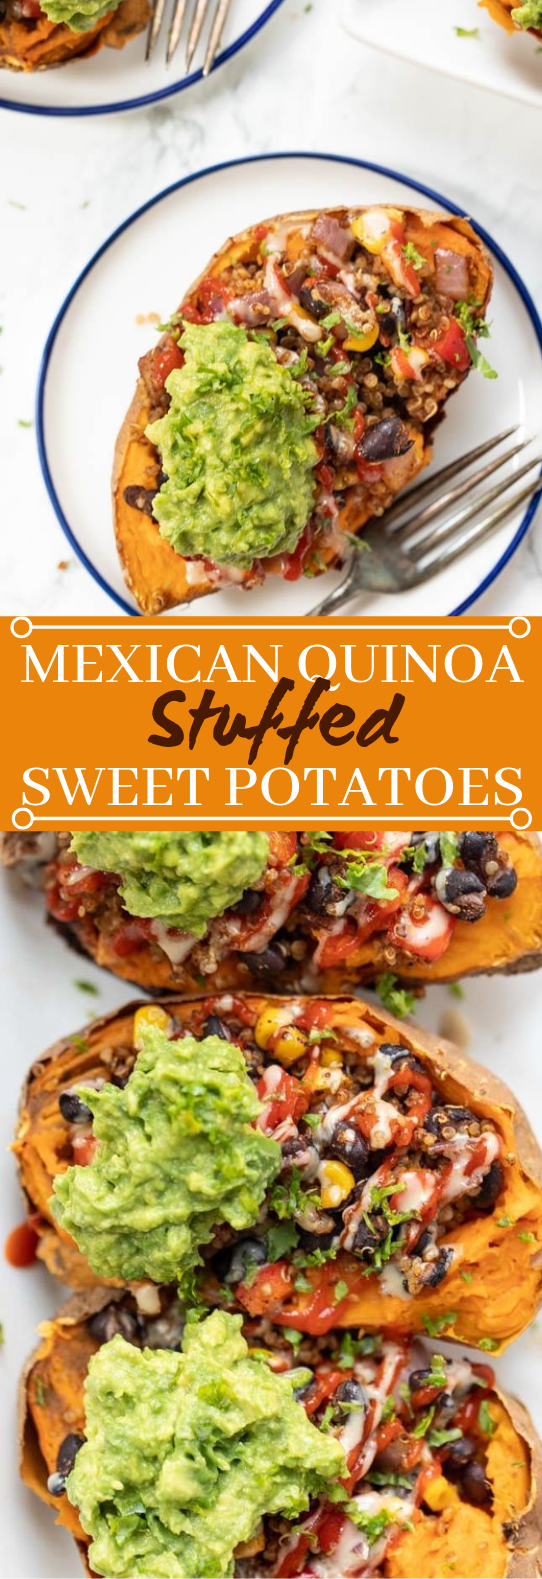 Mexican Quinoa Stuffed Sweet Potatoes #vegetarian #plantbased